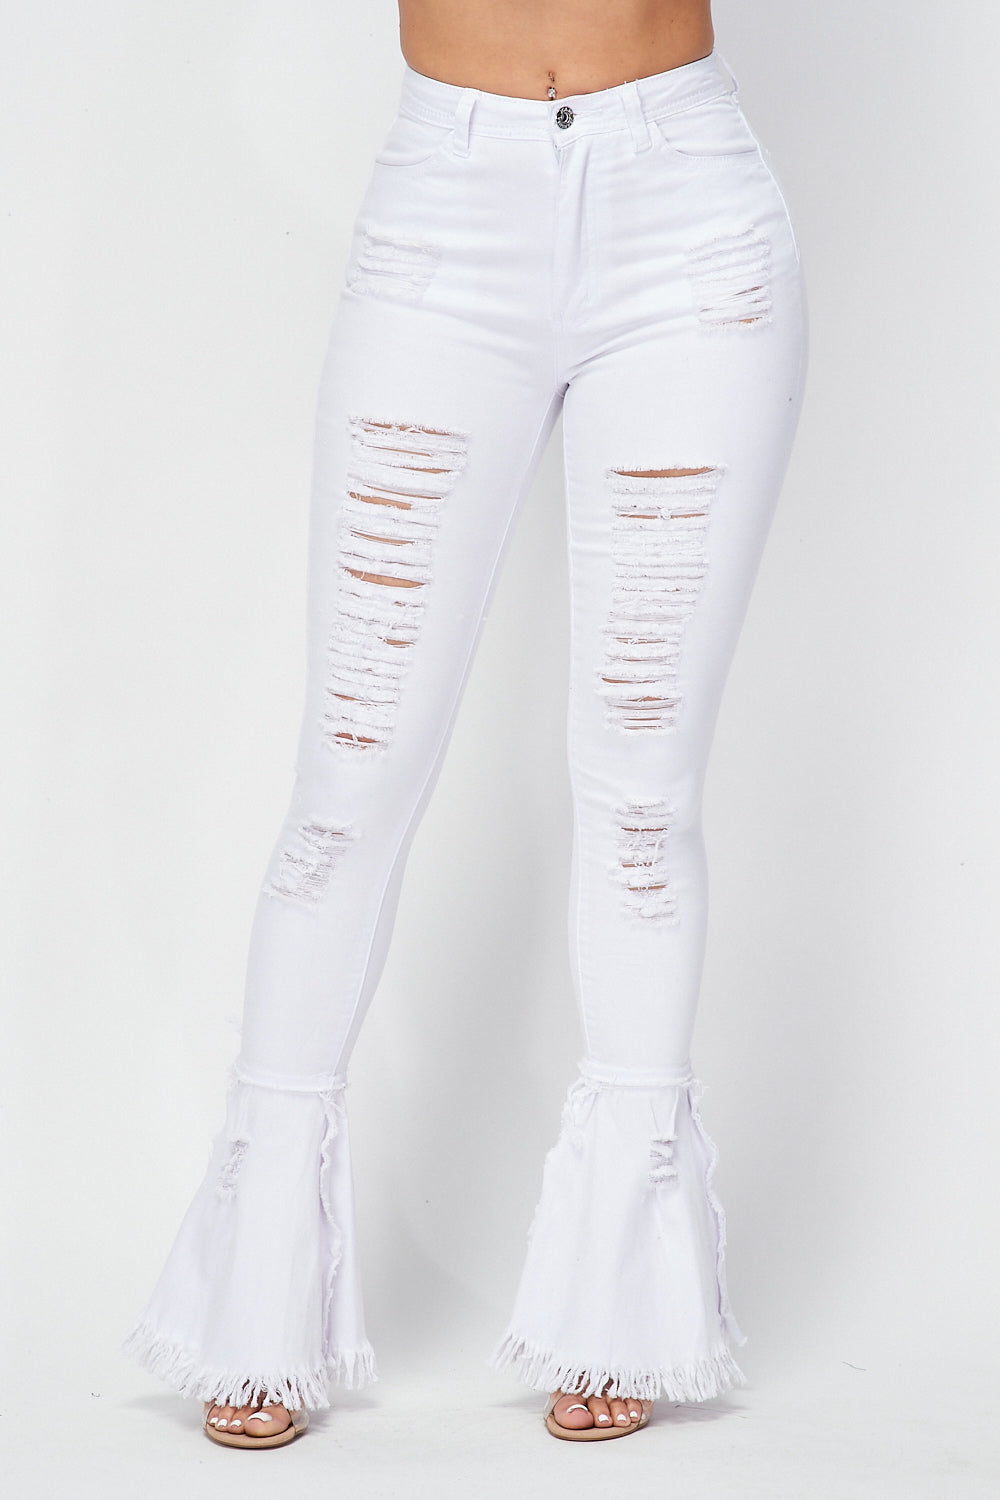 High Waist Destroyed Bell Bottom Pants in White - Fashion House USA